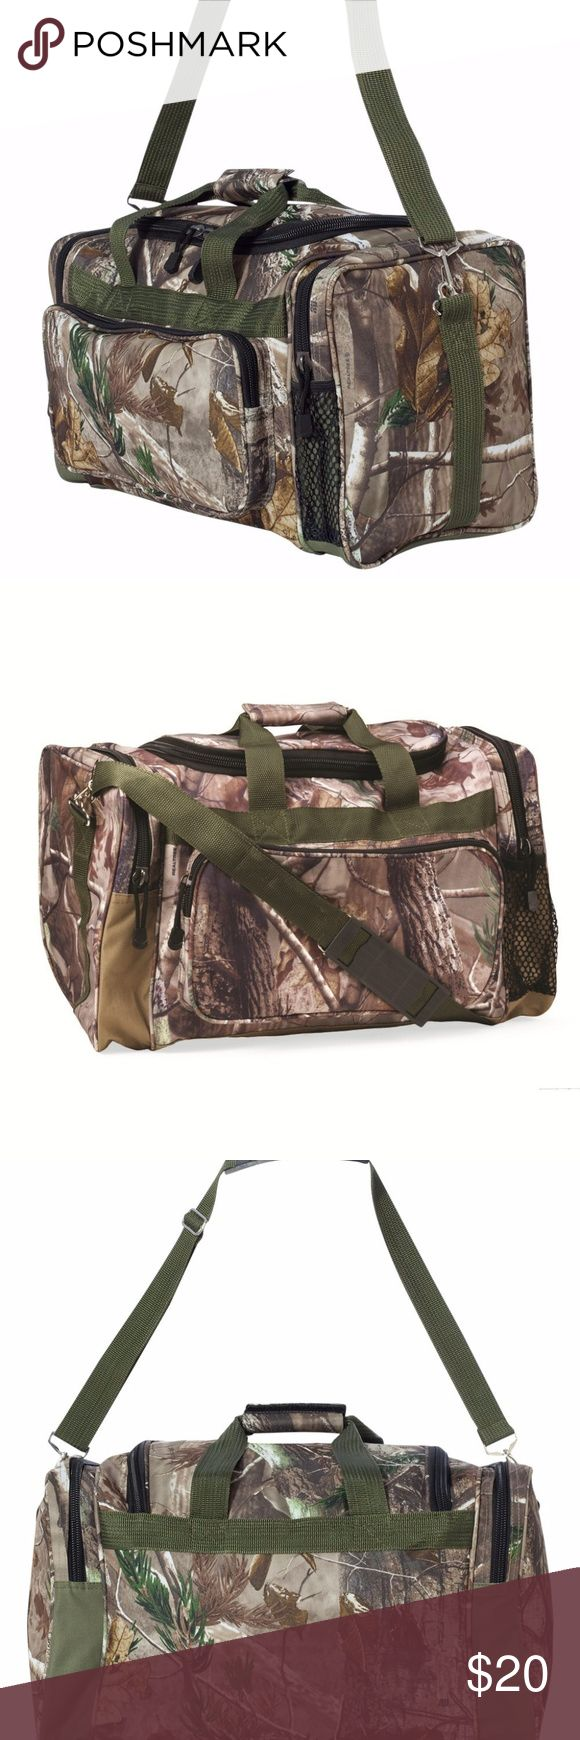 """NWT Real Tree Camo Camouflage Duffel Bag by Kati You are looking at a brand new Real Tree Camo Camouflage Duffel Bag by Kati. 600D polyester with PVC backing Adjustable removable shoulder strap Zippered main compartment Two end zippered pockets Front zippered pocket Size: 22"""" x 11"""" x 10"""" Real Tree Bags Duffel Bags"""